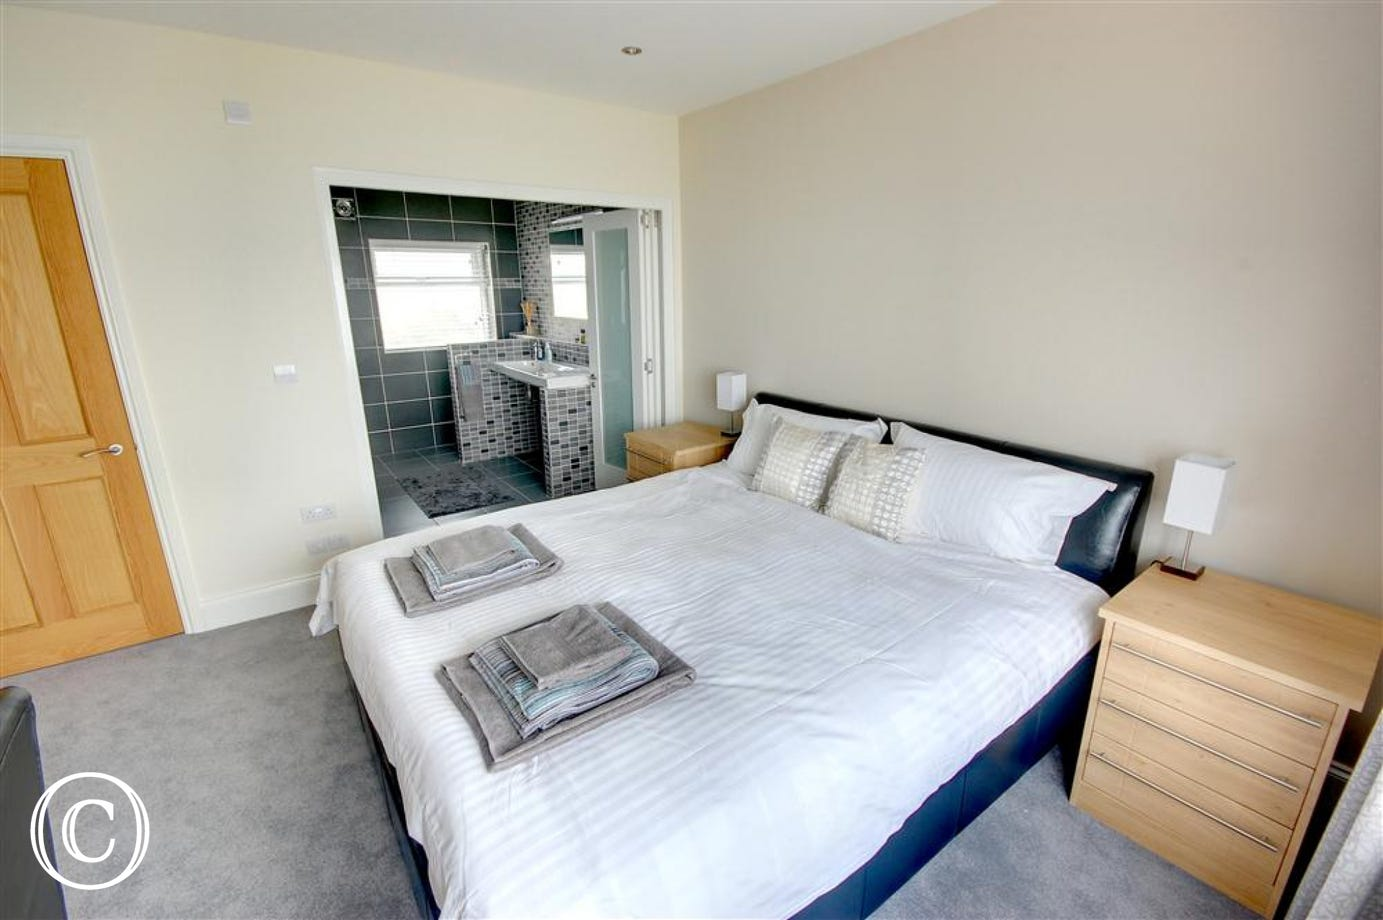 Master Bedroom which has its own en-suite with sliding doors.